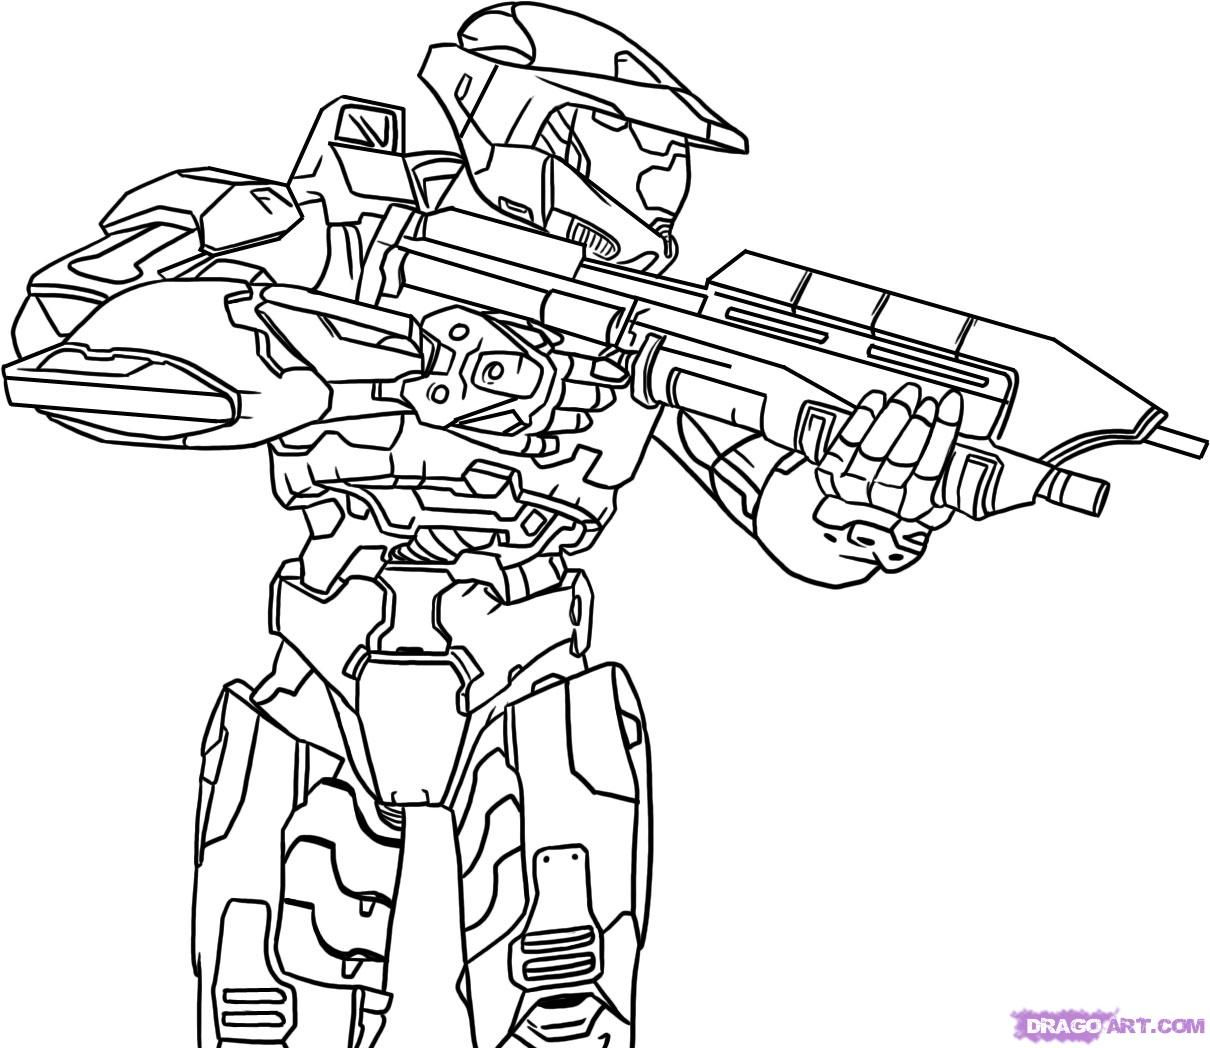 1210x1048 Halo Drawings Bing Images Coloring Pages For Adults